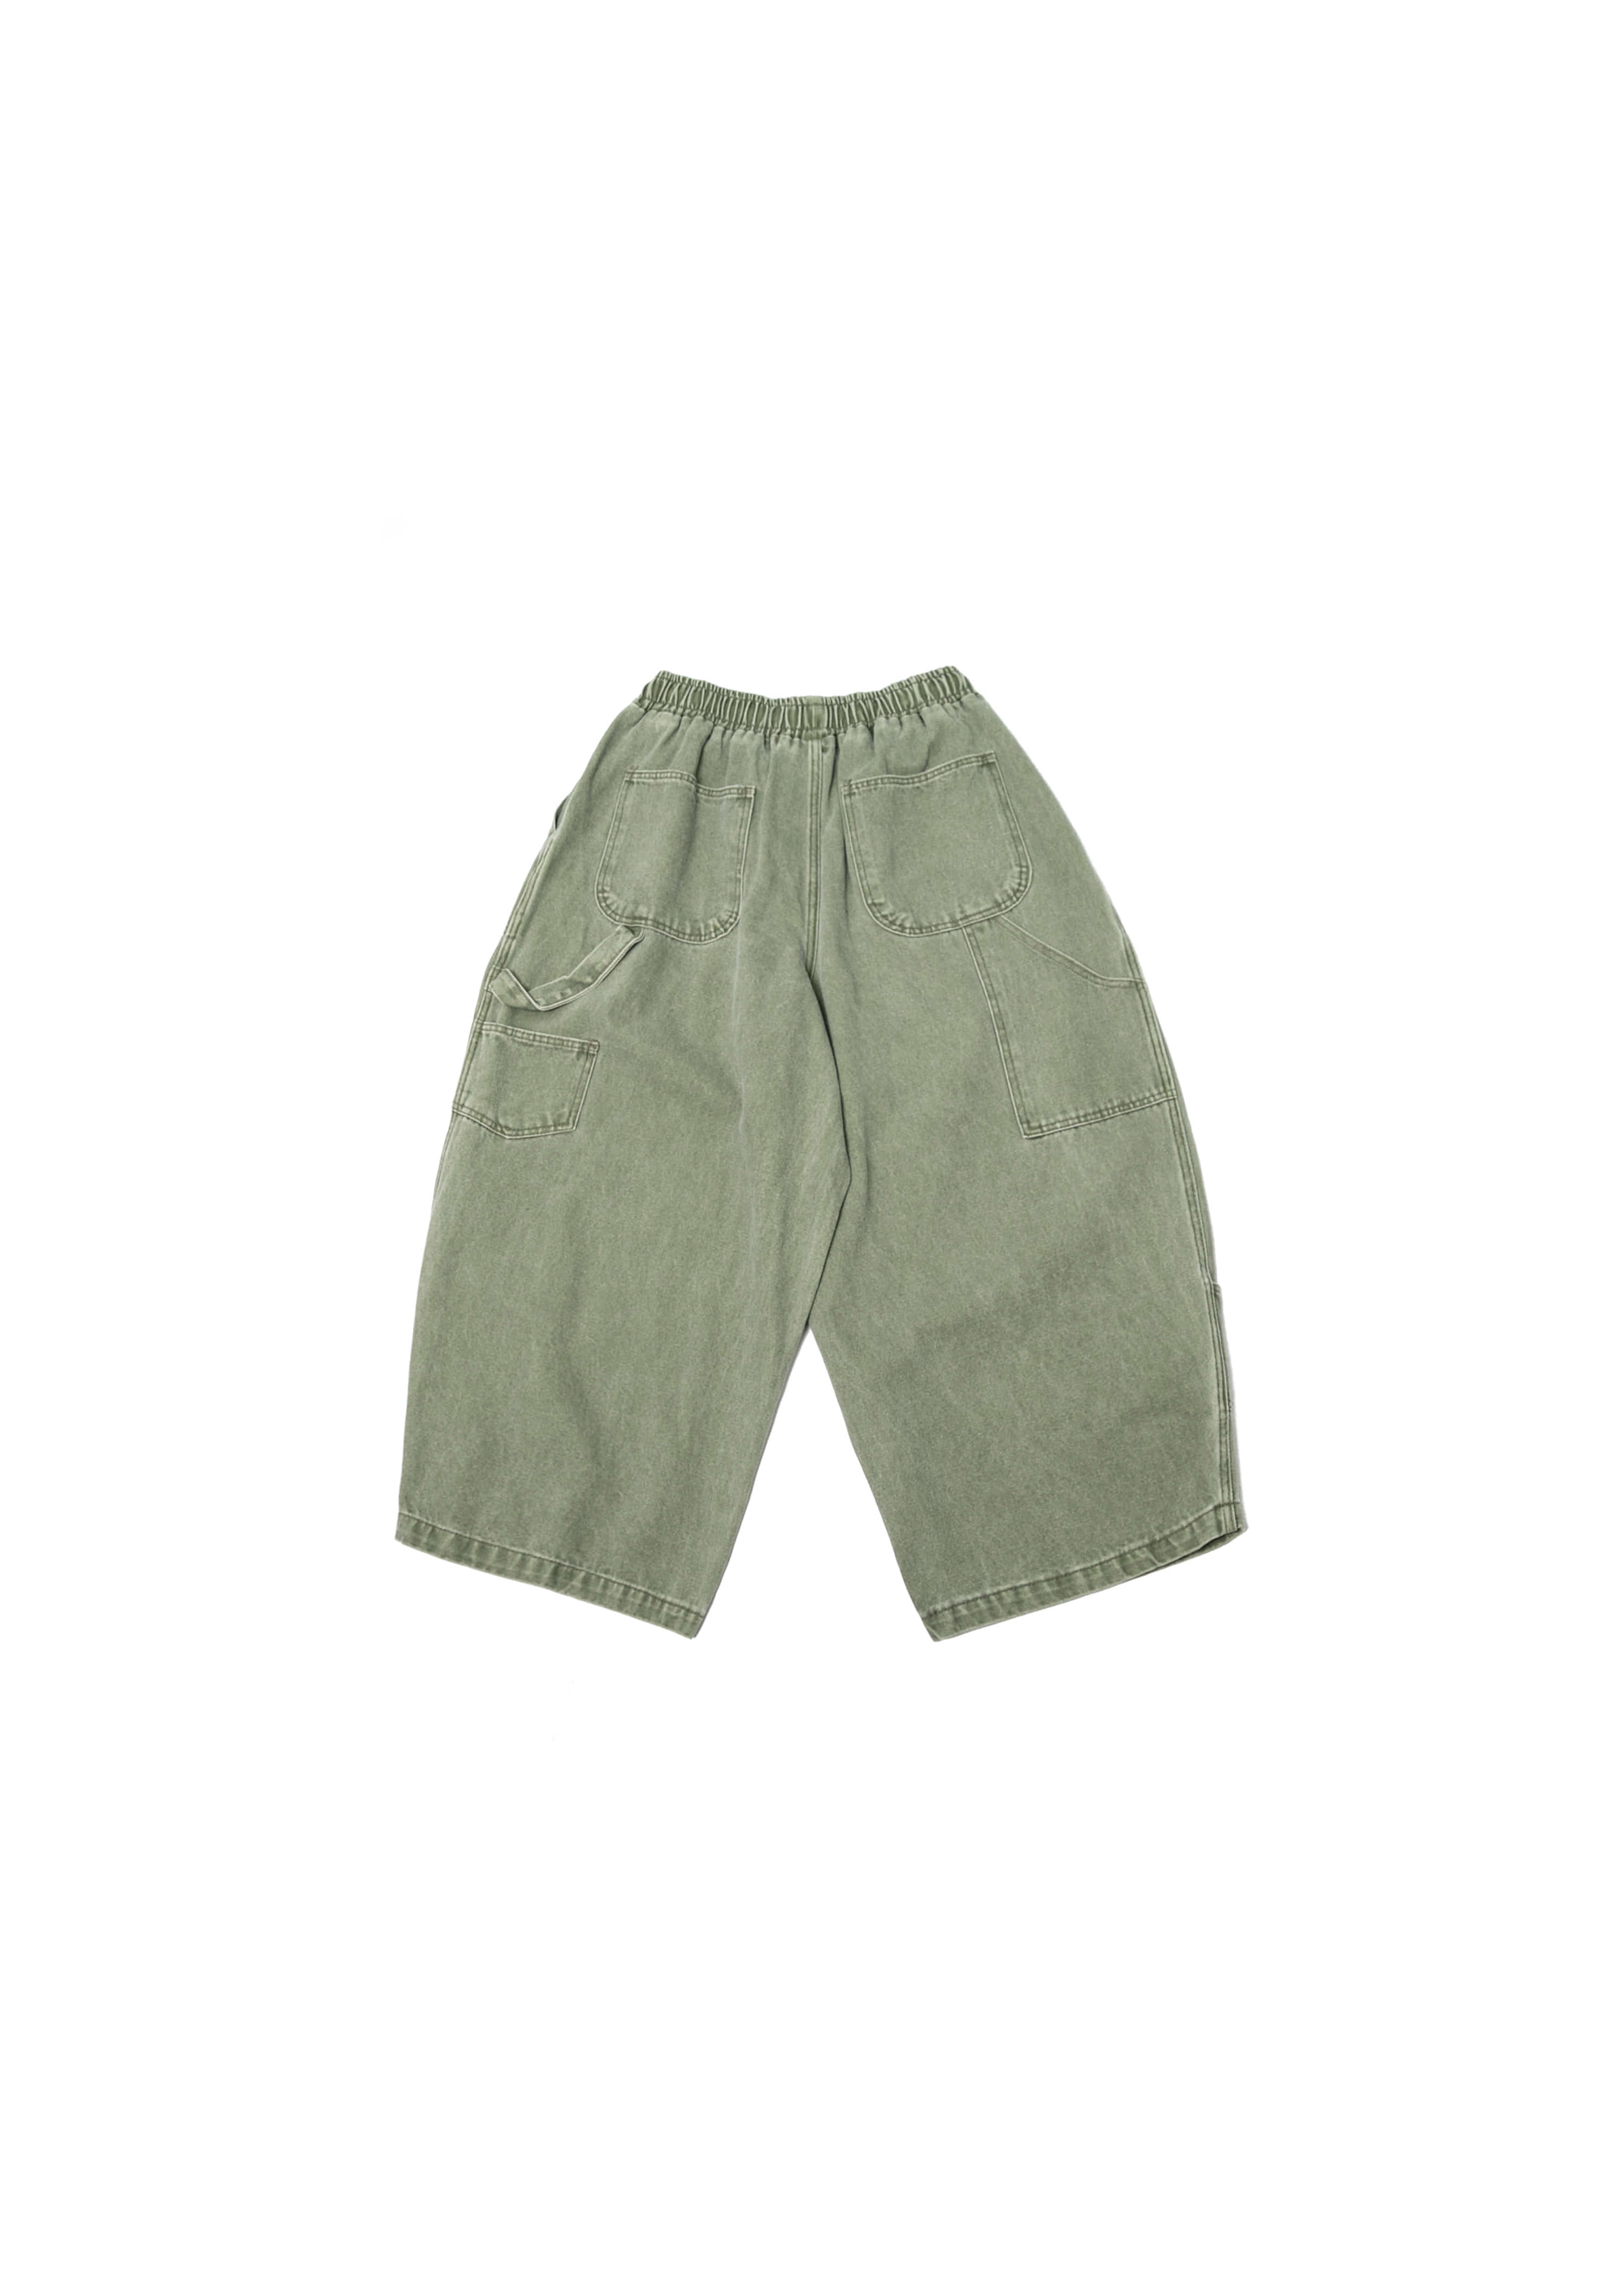 Pigment Fatigue Balloon Pants - Khaki